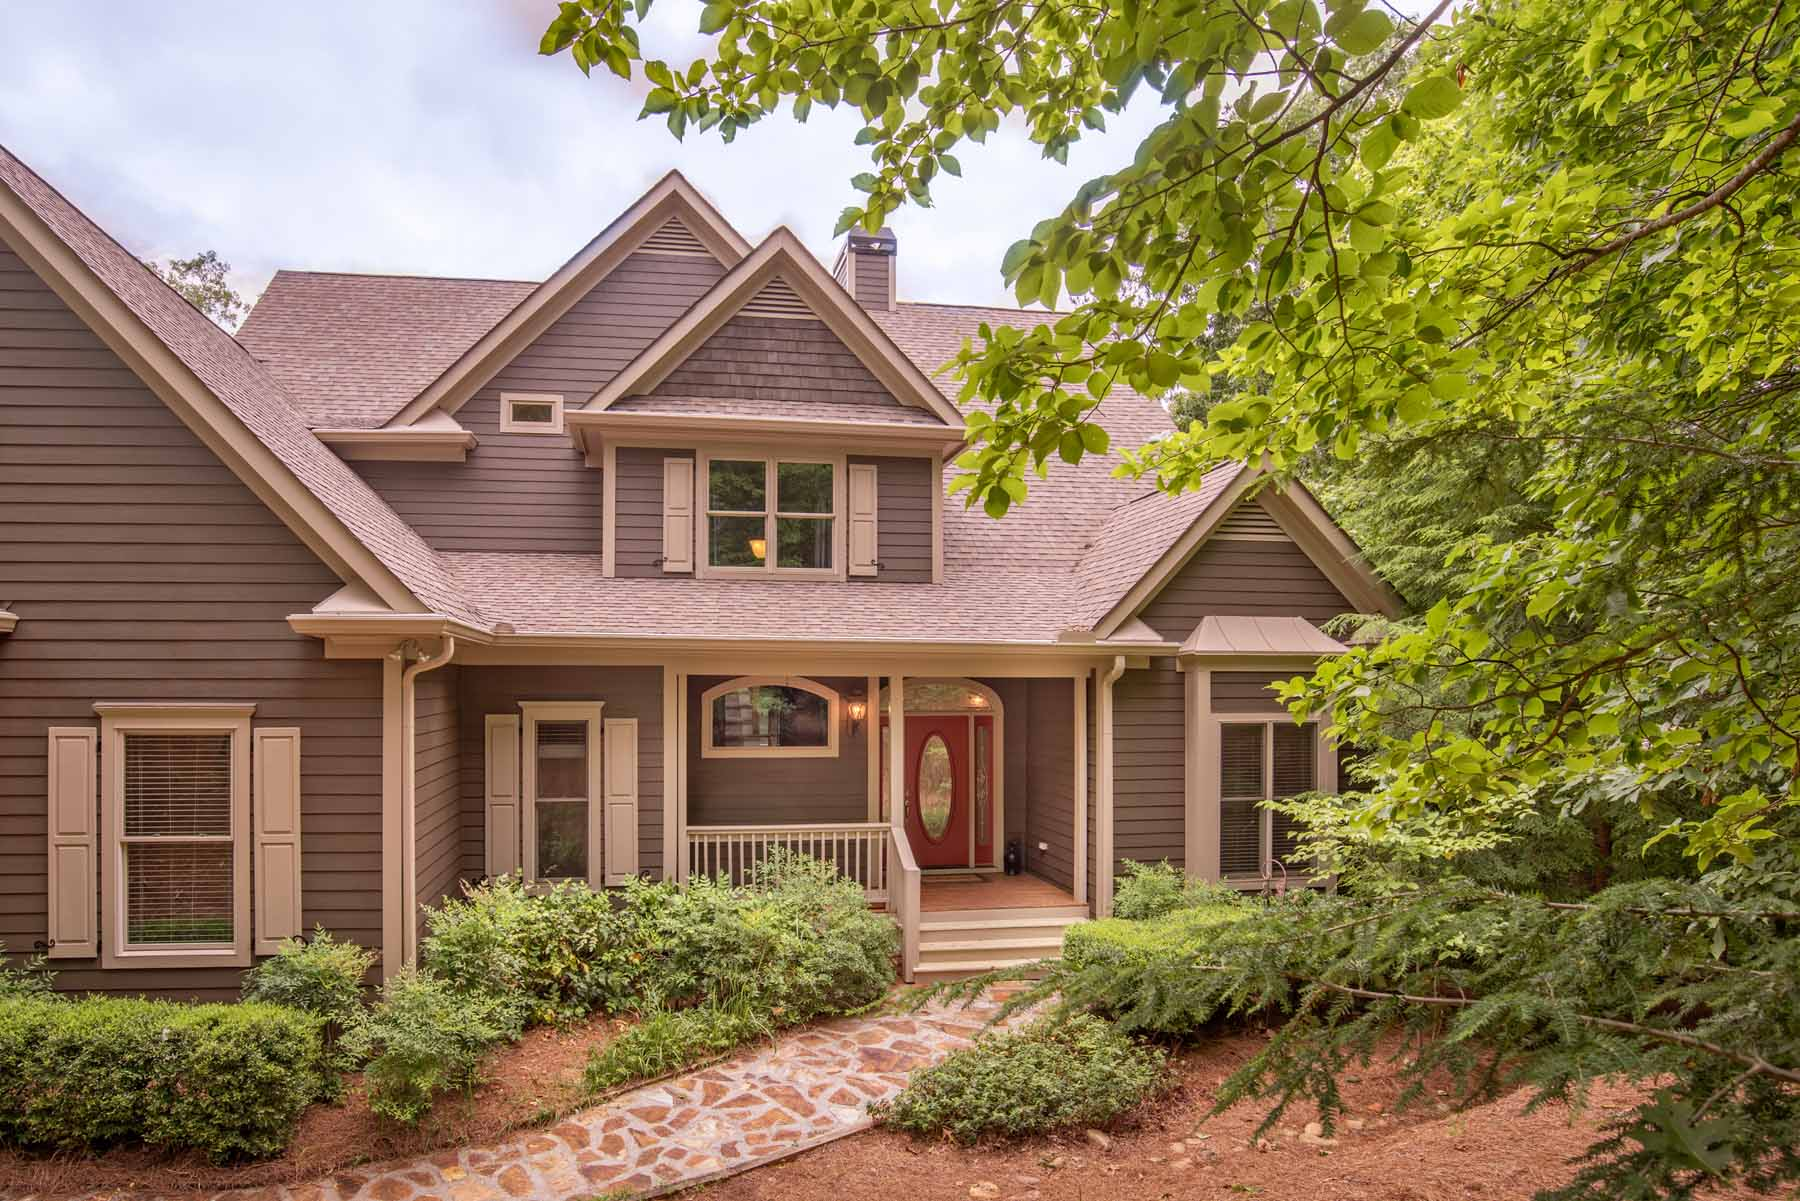 Single Family Home for Sale at Mountain Bliss One Hour North of Atlanta 182 Cherokee Drive Big Canoe, Georgia, 30143 United States